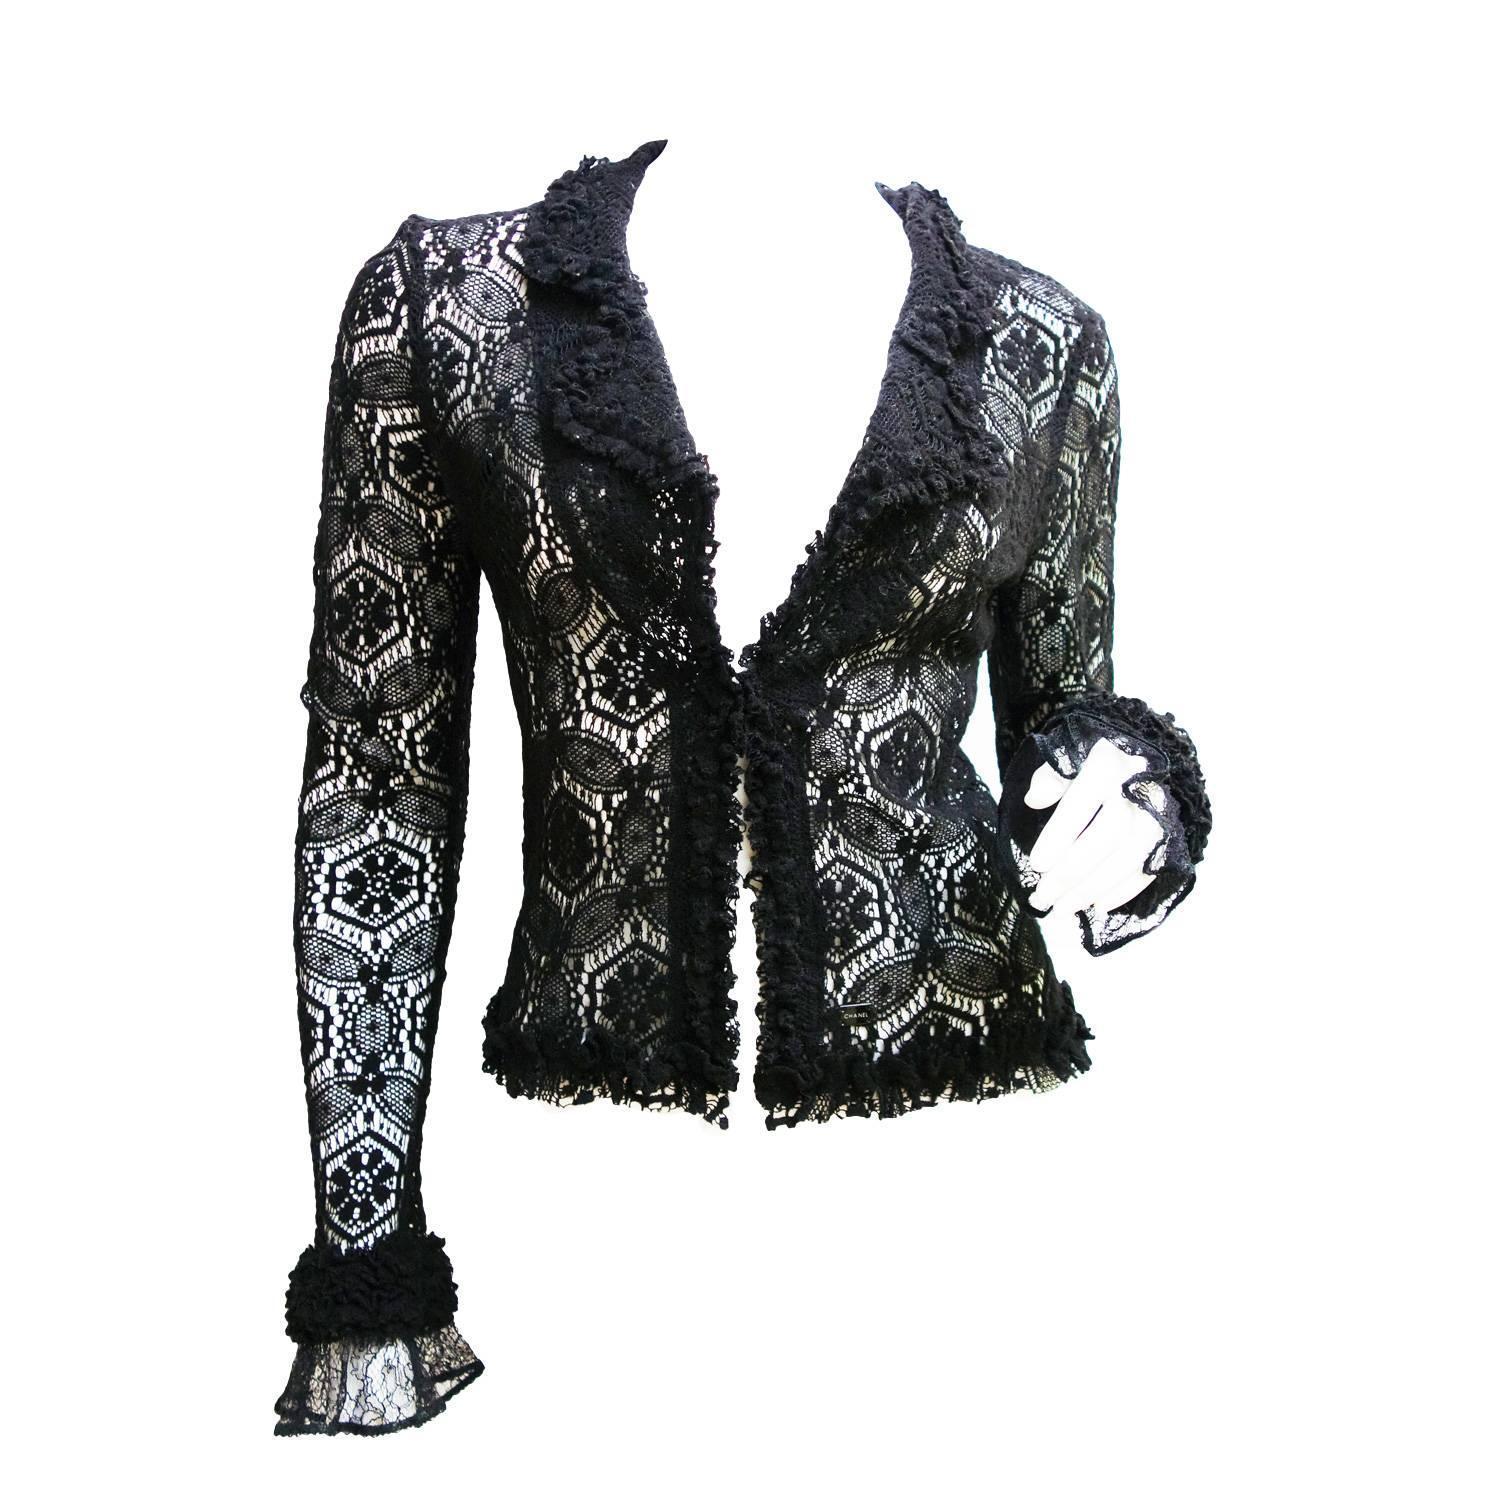 CHANEL Black Lace Cardigan Top 04A Size 38 at 1stdibs